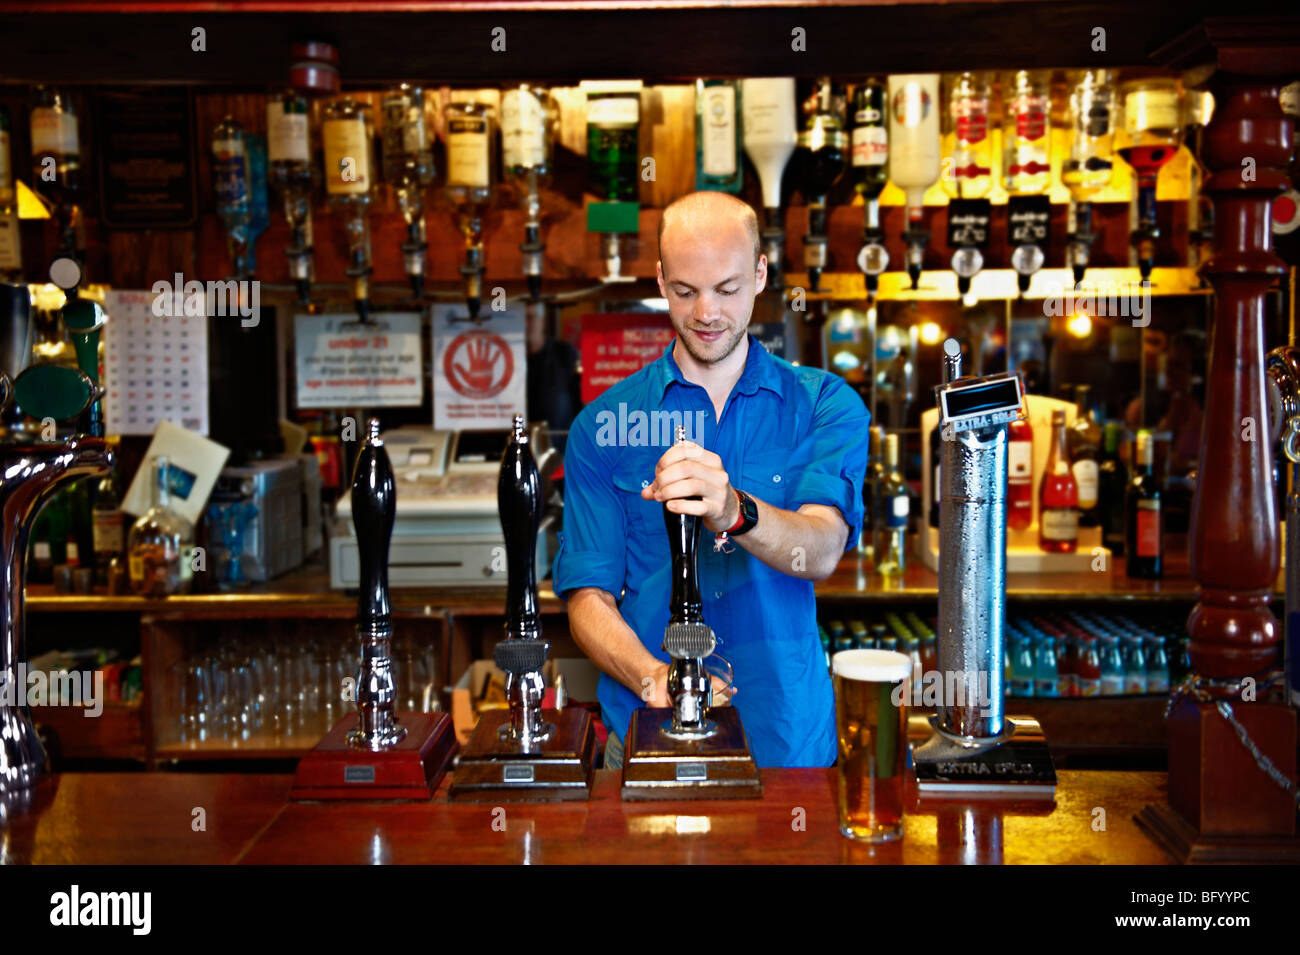 Barman standing behind bar in pub - Stock Image